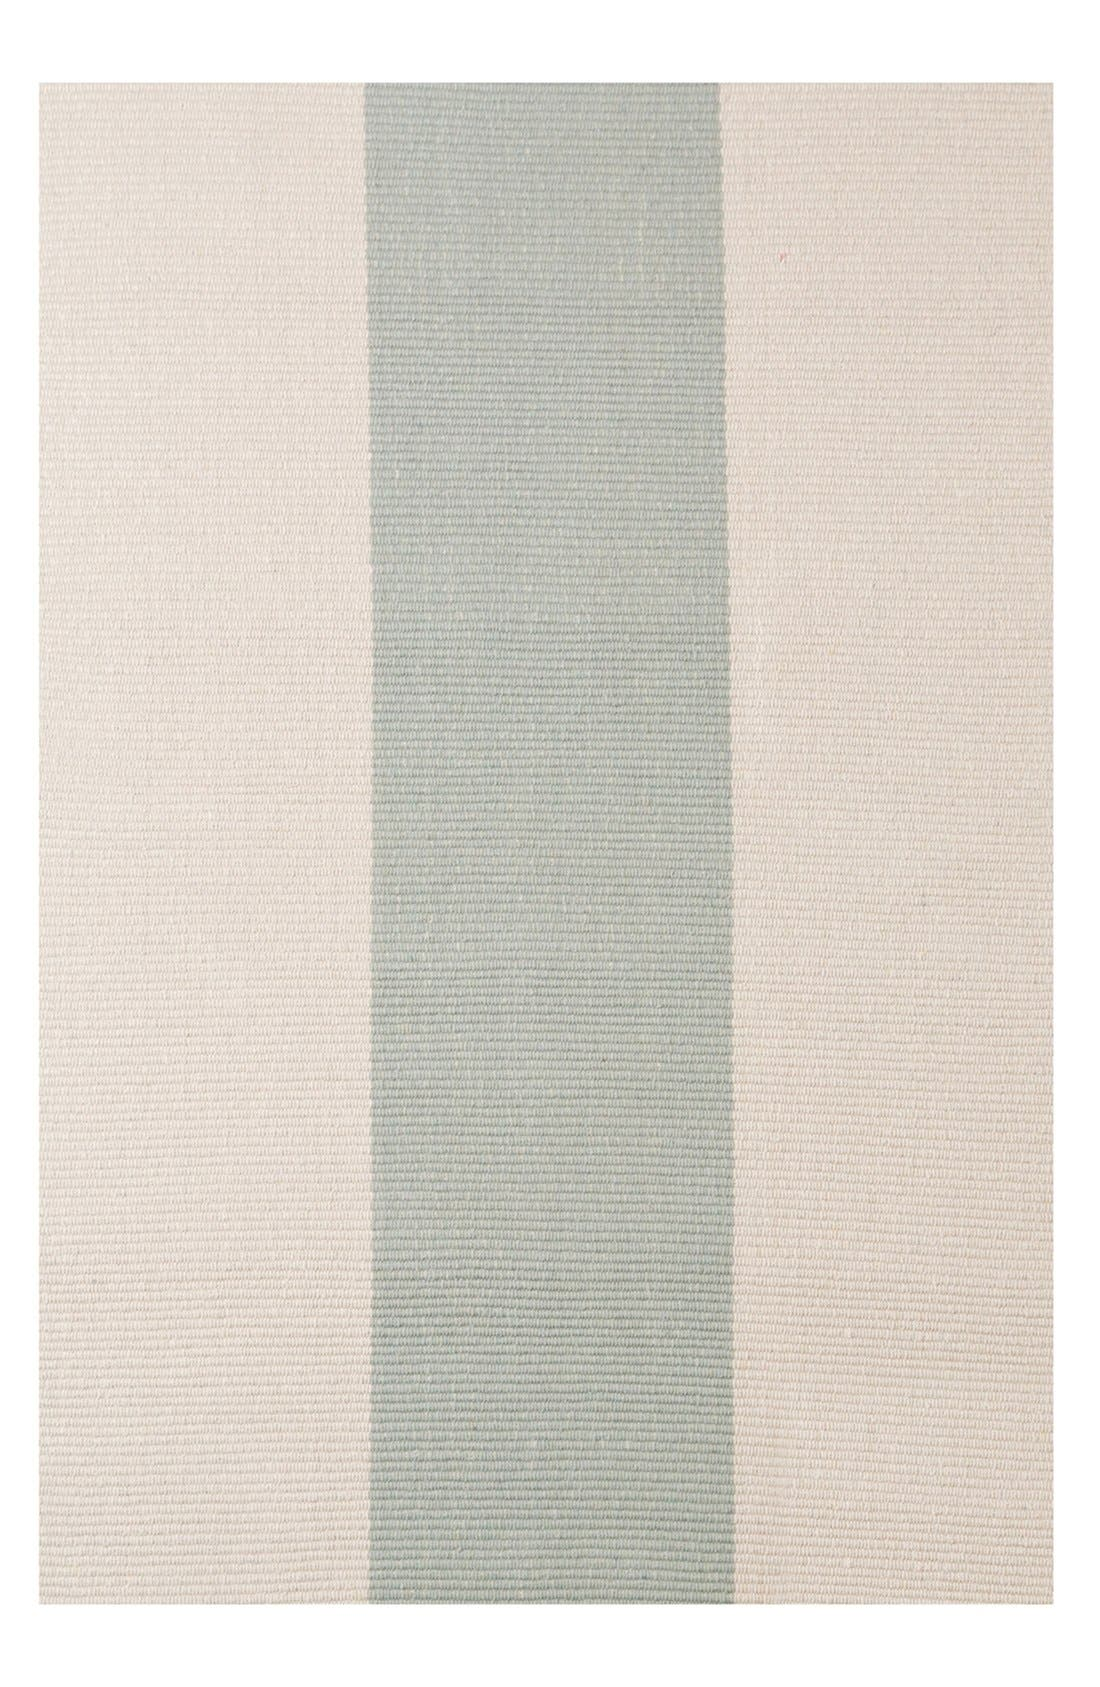 Dash & Albert 'Yacht' Stripe Rug